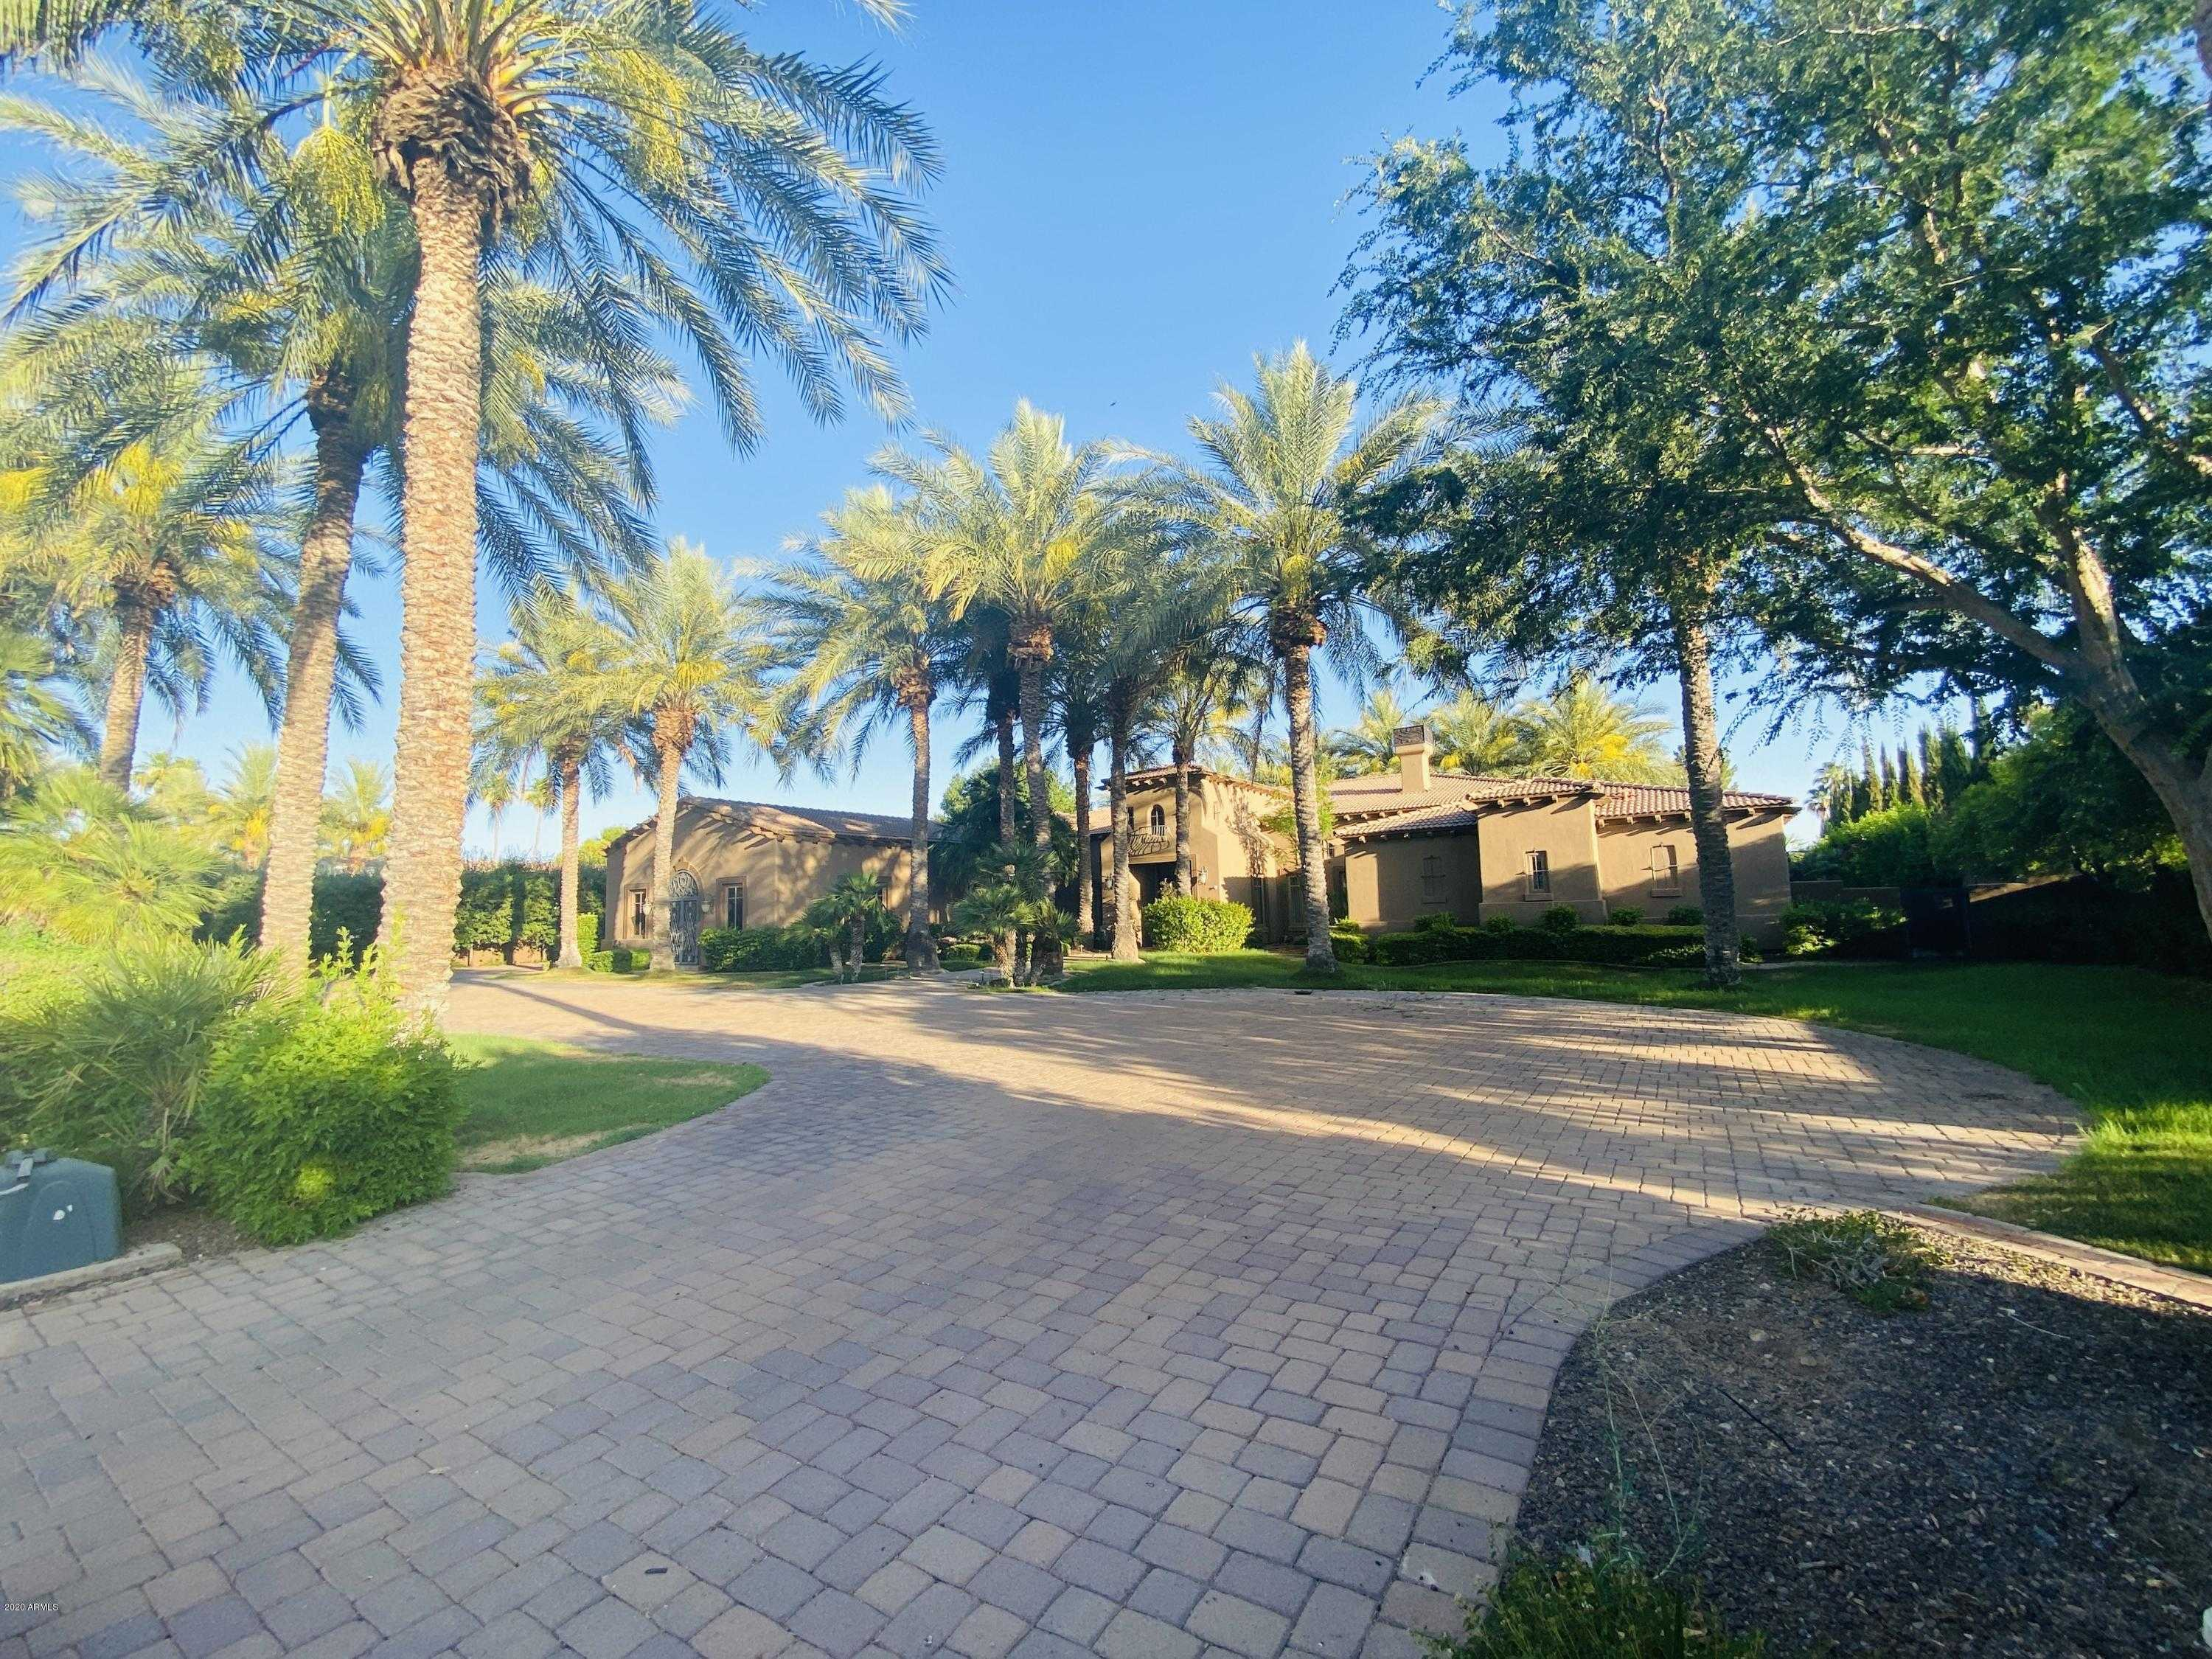 $3,500,000 - 5Br/6Ba - Home for Sale in Baxter Acres Abitrary Lots 1&2, Scottsdale